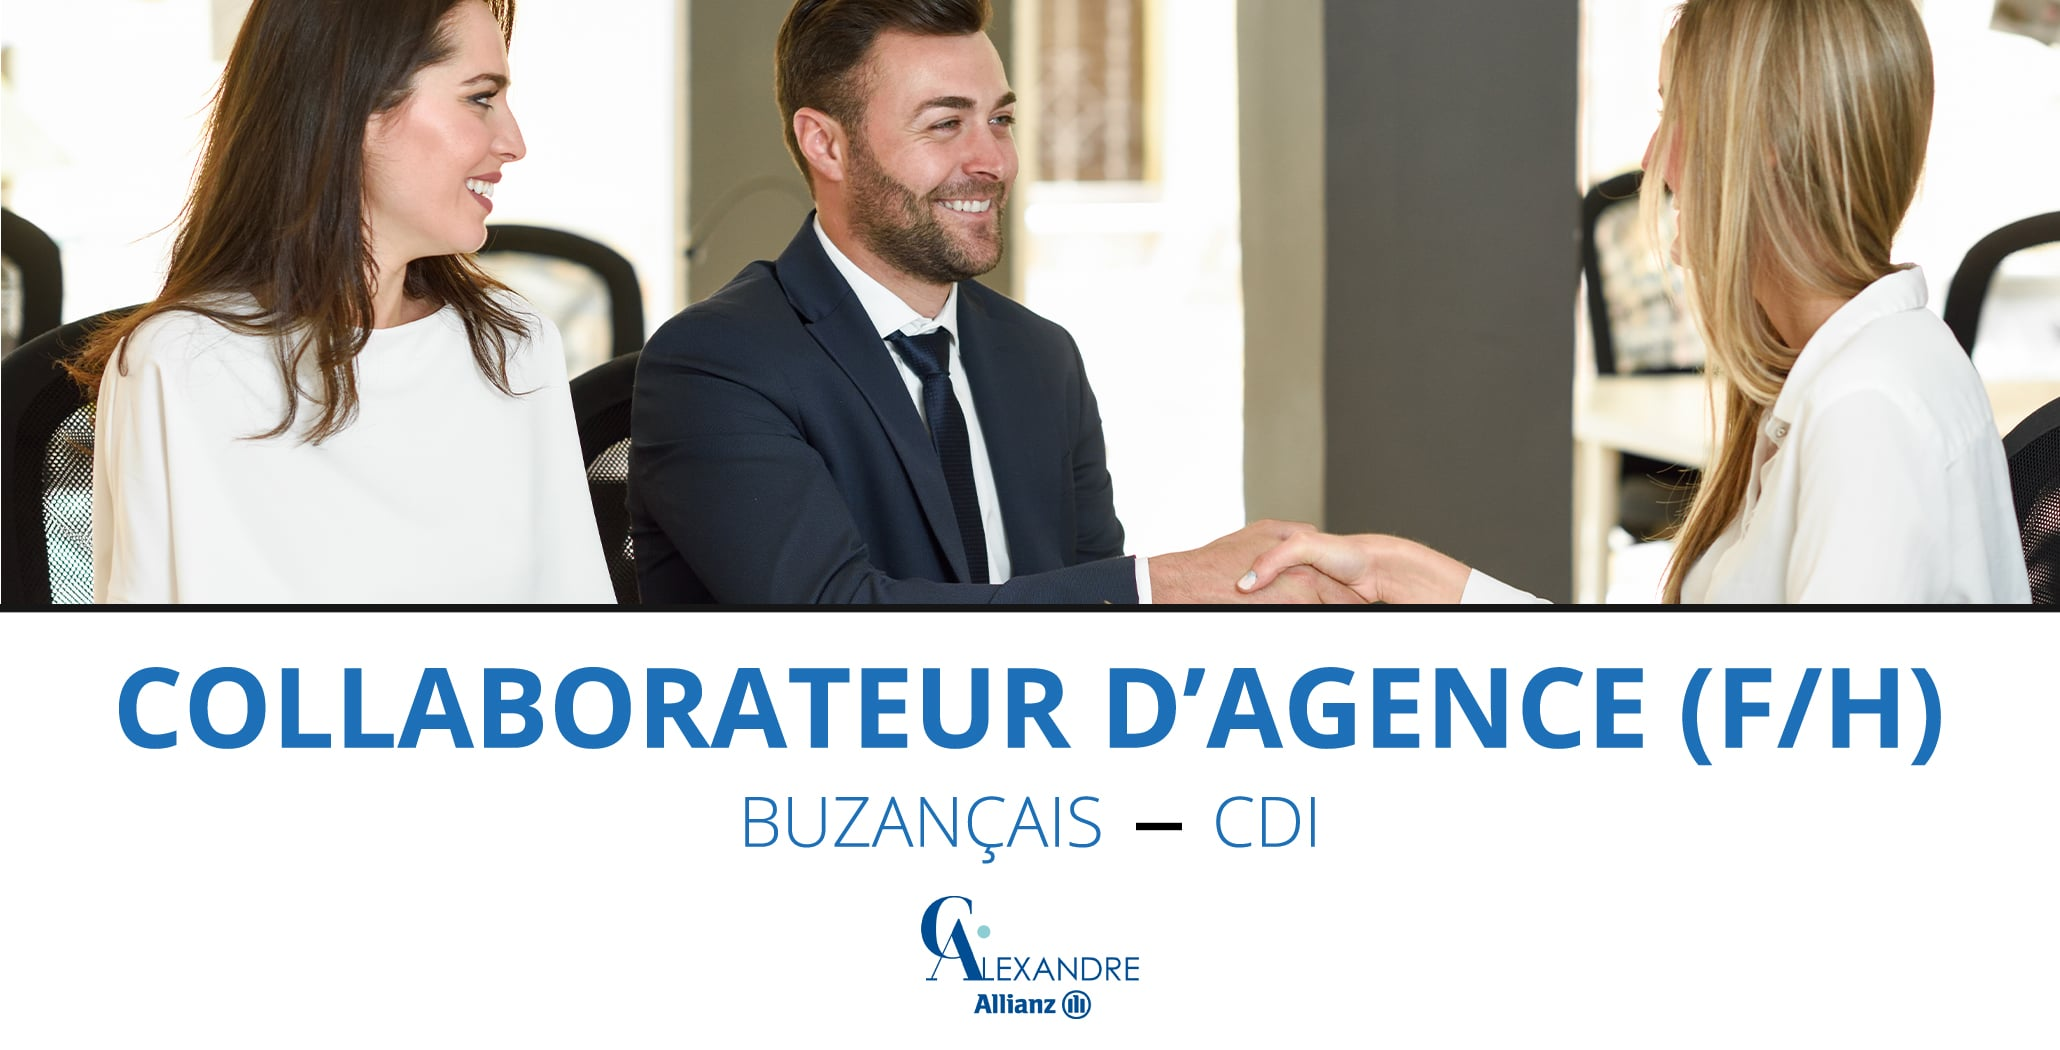 COLLABORATEUR D'AGENCE BUZANCAIS – ALLIANZ CHRISTINE ALEXANDRE